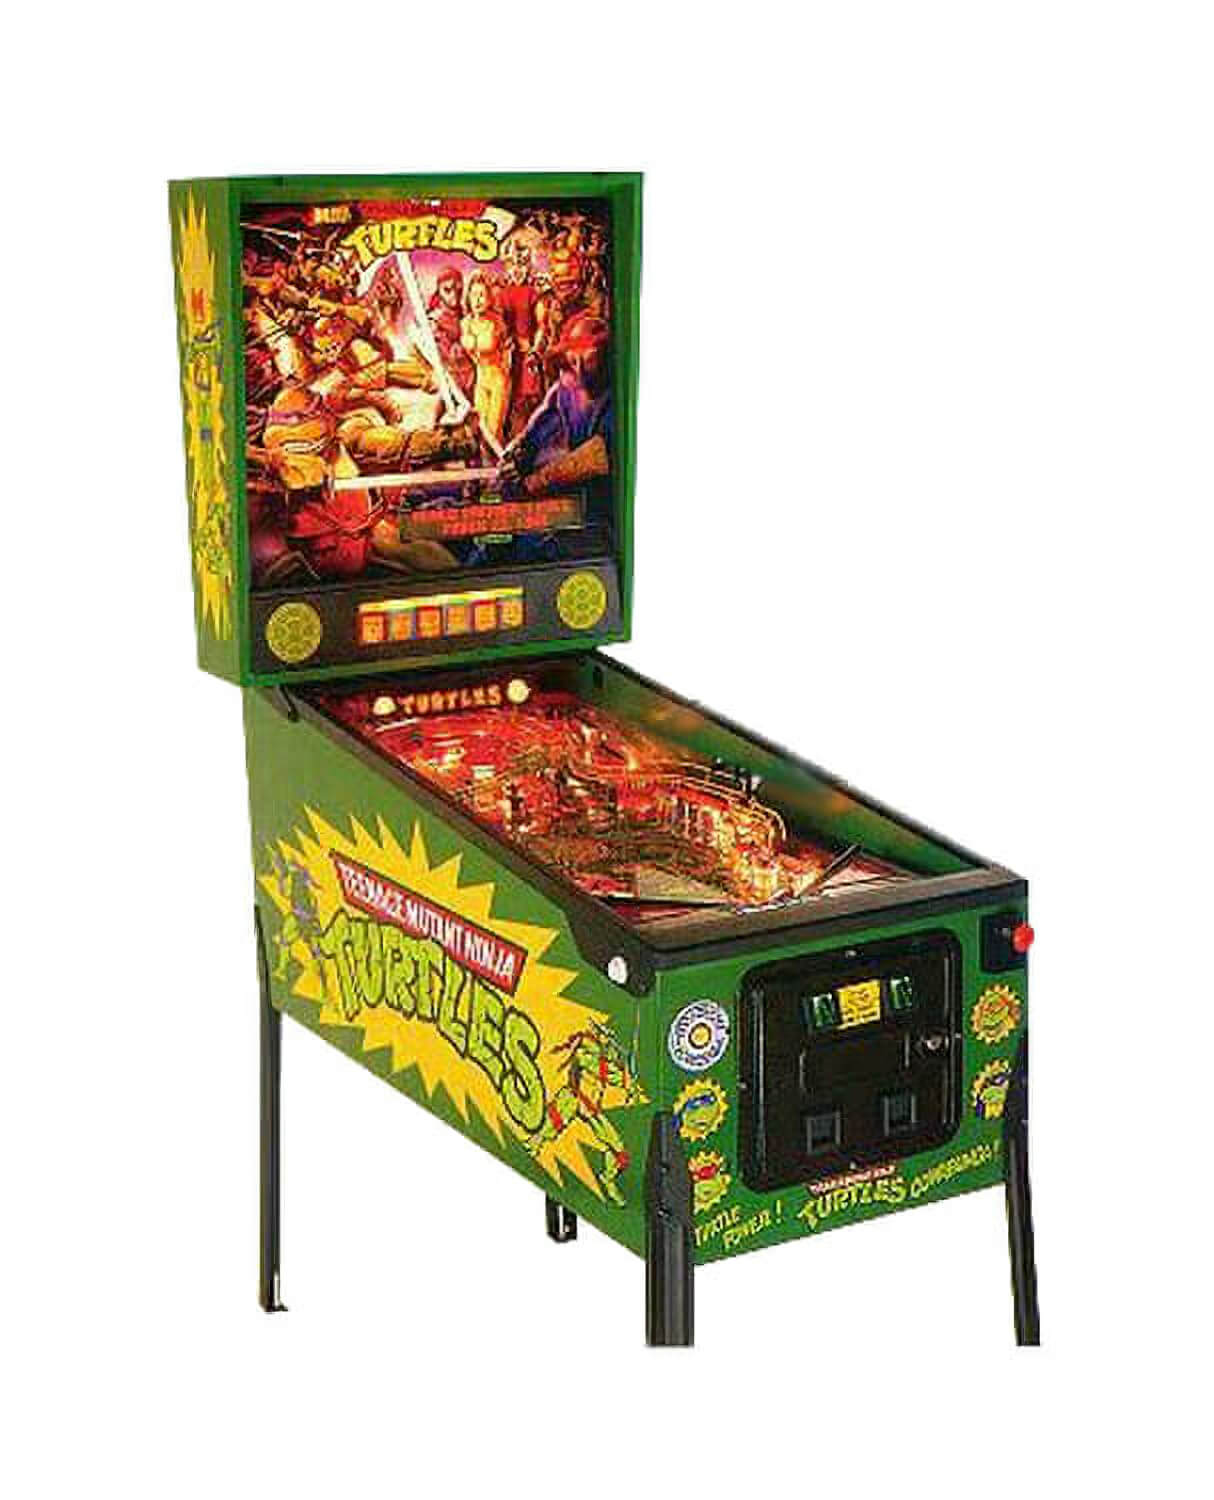 Teenage Mutant Ninja Turtles Pinball Machine Liberty Games